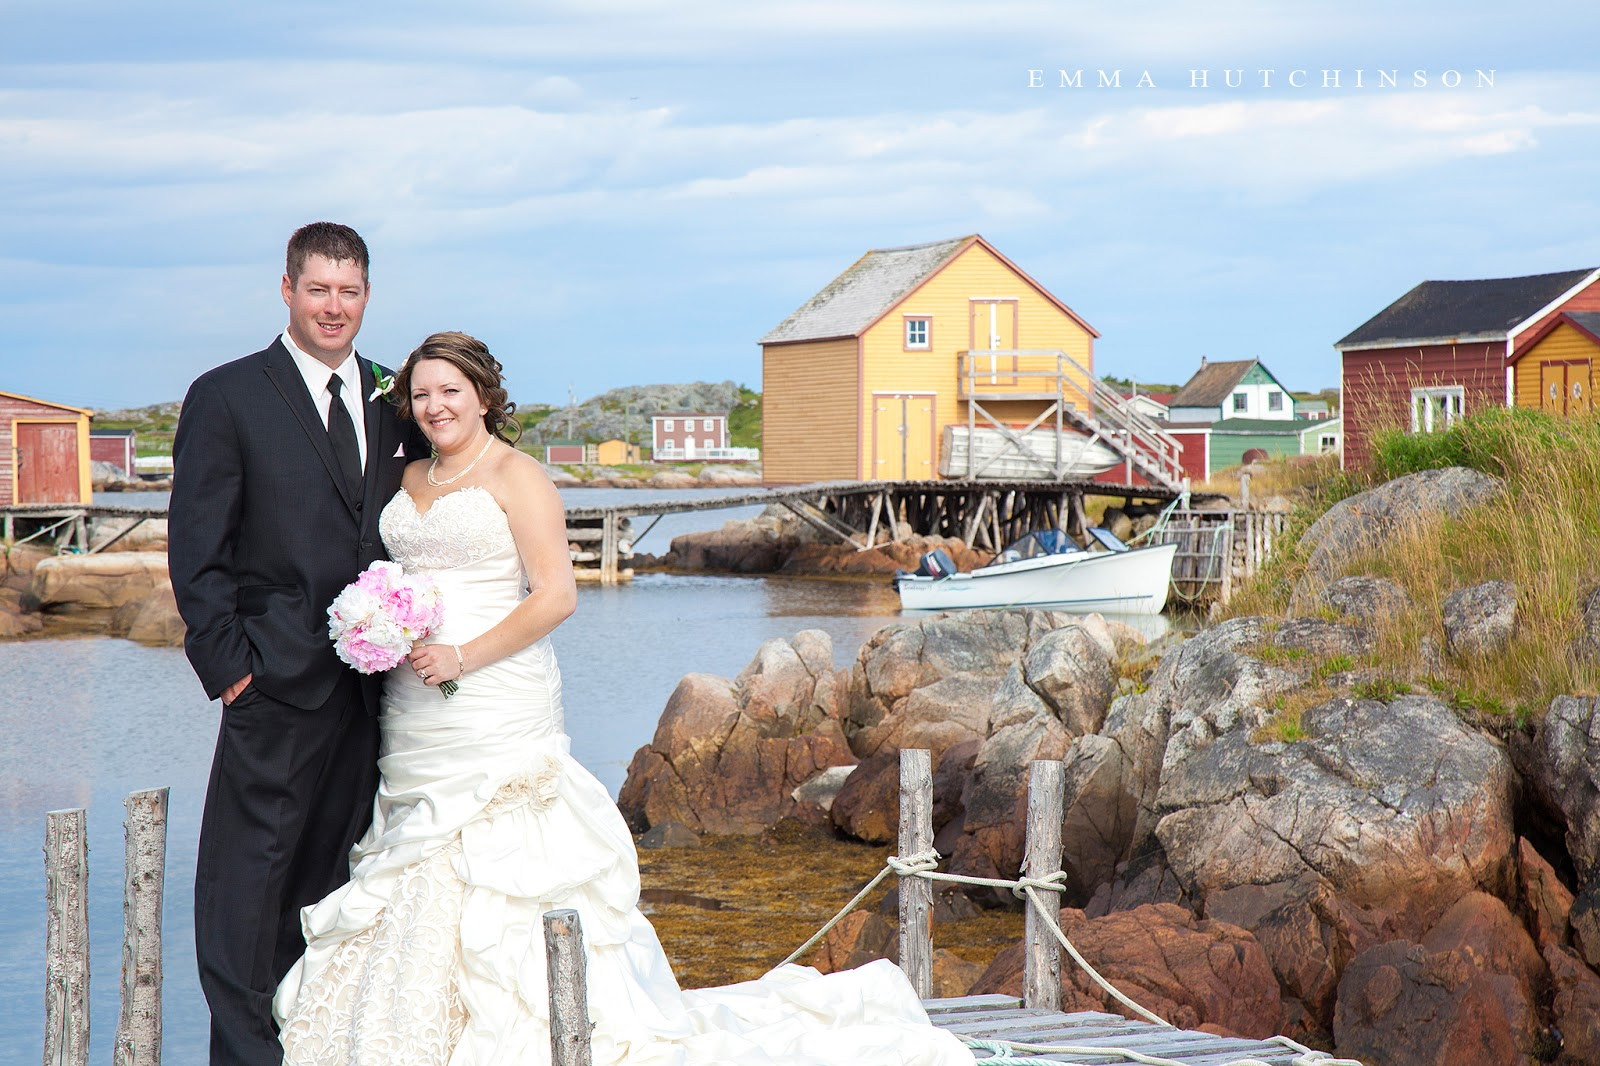 Weddings in Tilting, Fogo Island - photograph of Bride and Groom